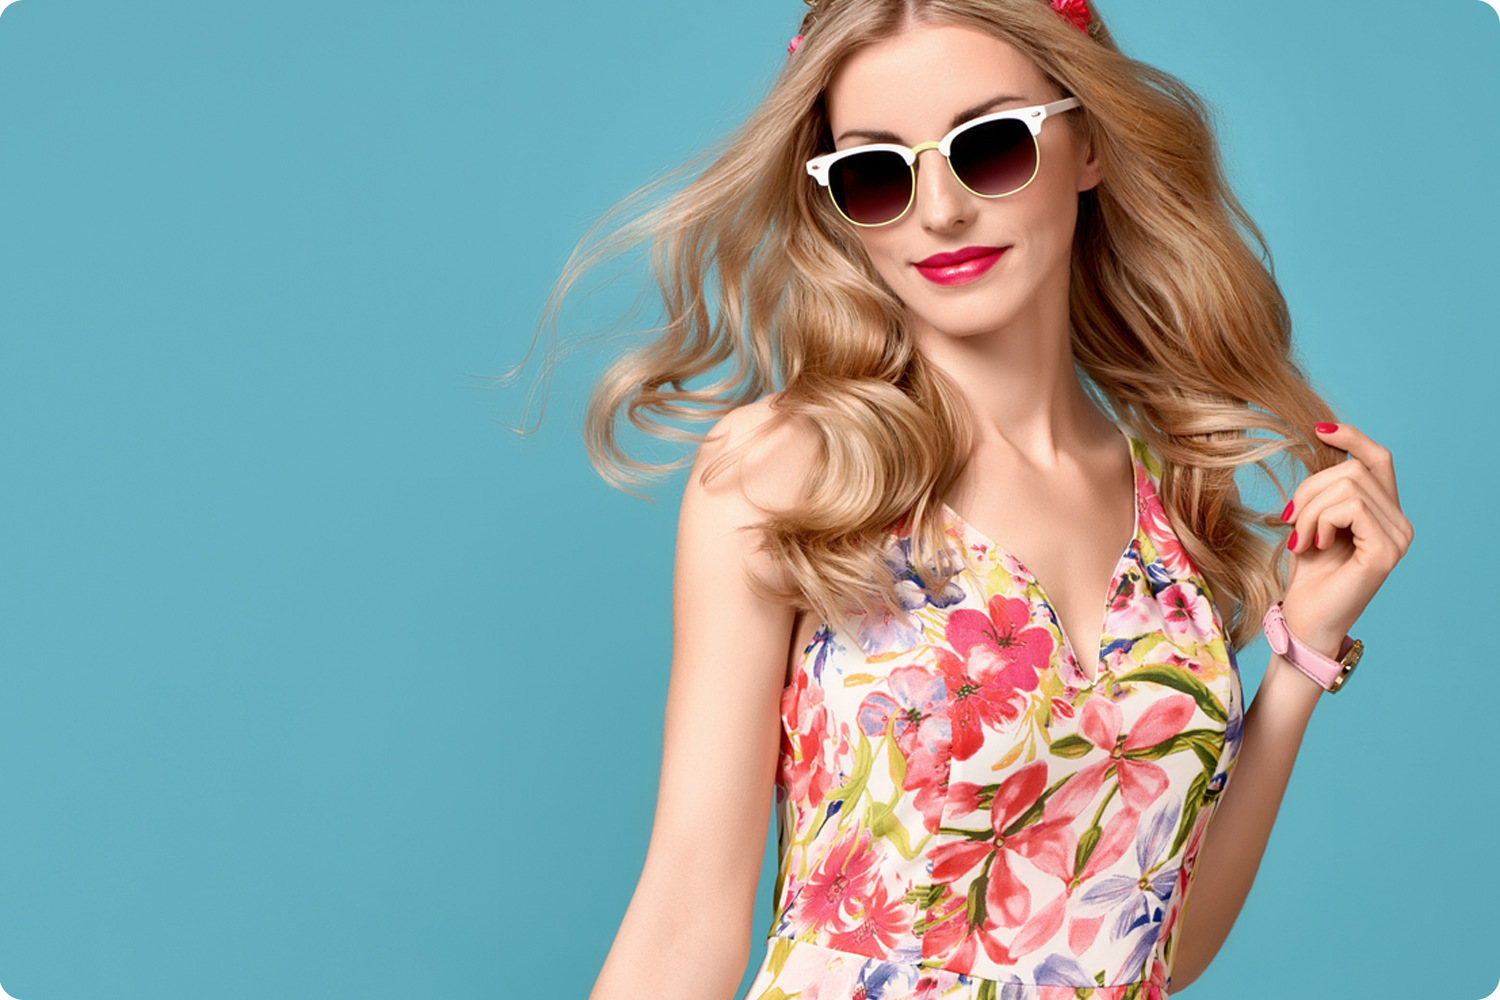 Woman modeling sunglasses and watch on a teal background